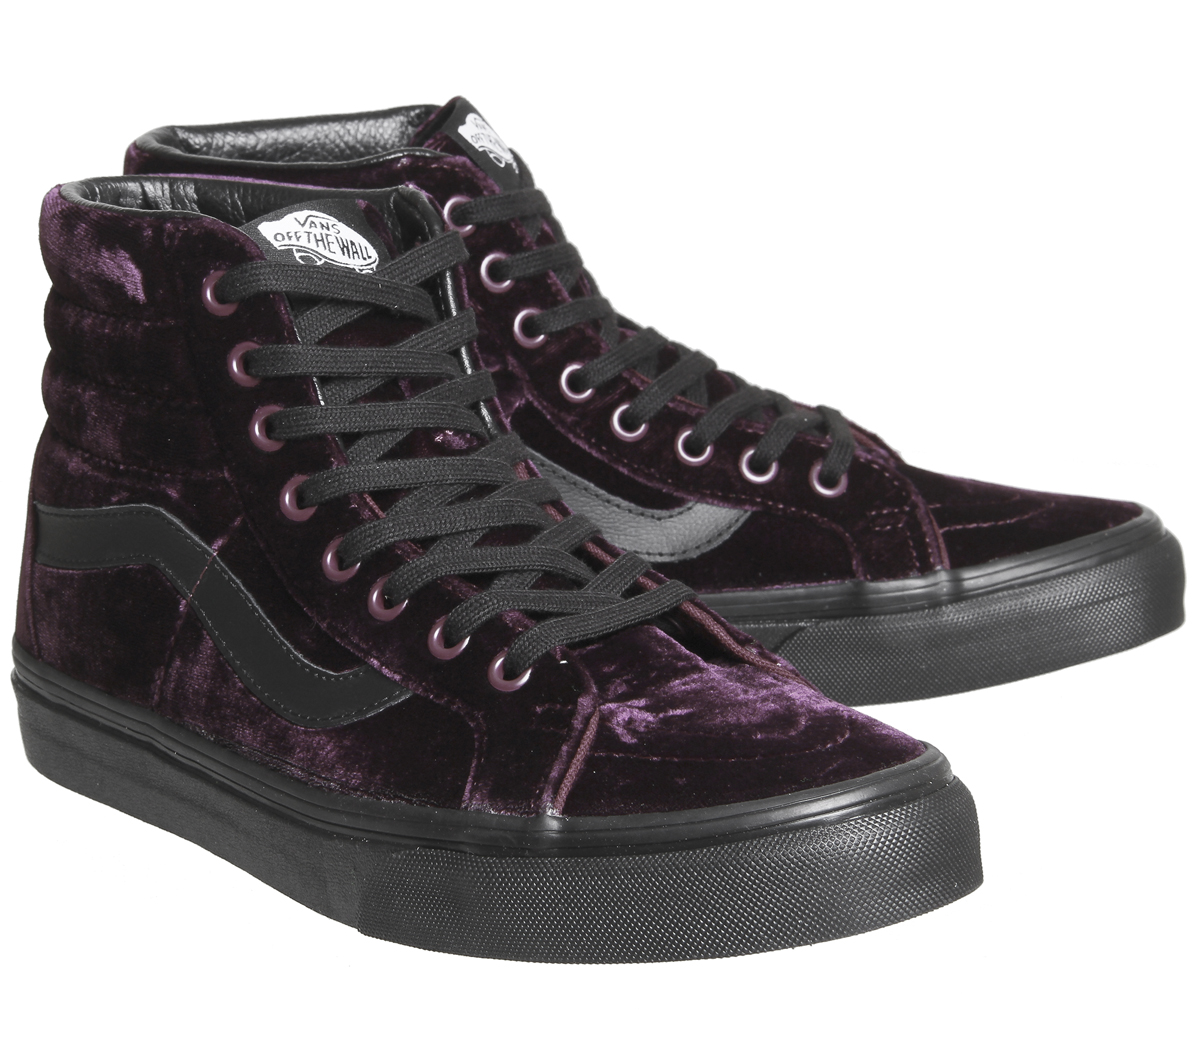 7edabd2293 Womens Vans Sk8 Hi Reissue VELVET BURGUNDY BLACK Trainers Shoes